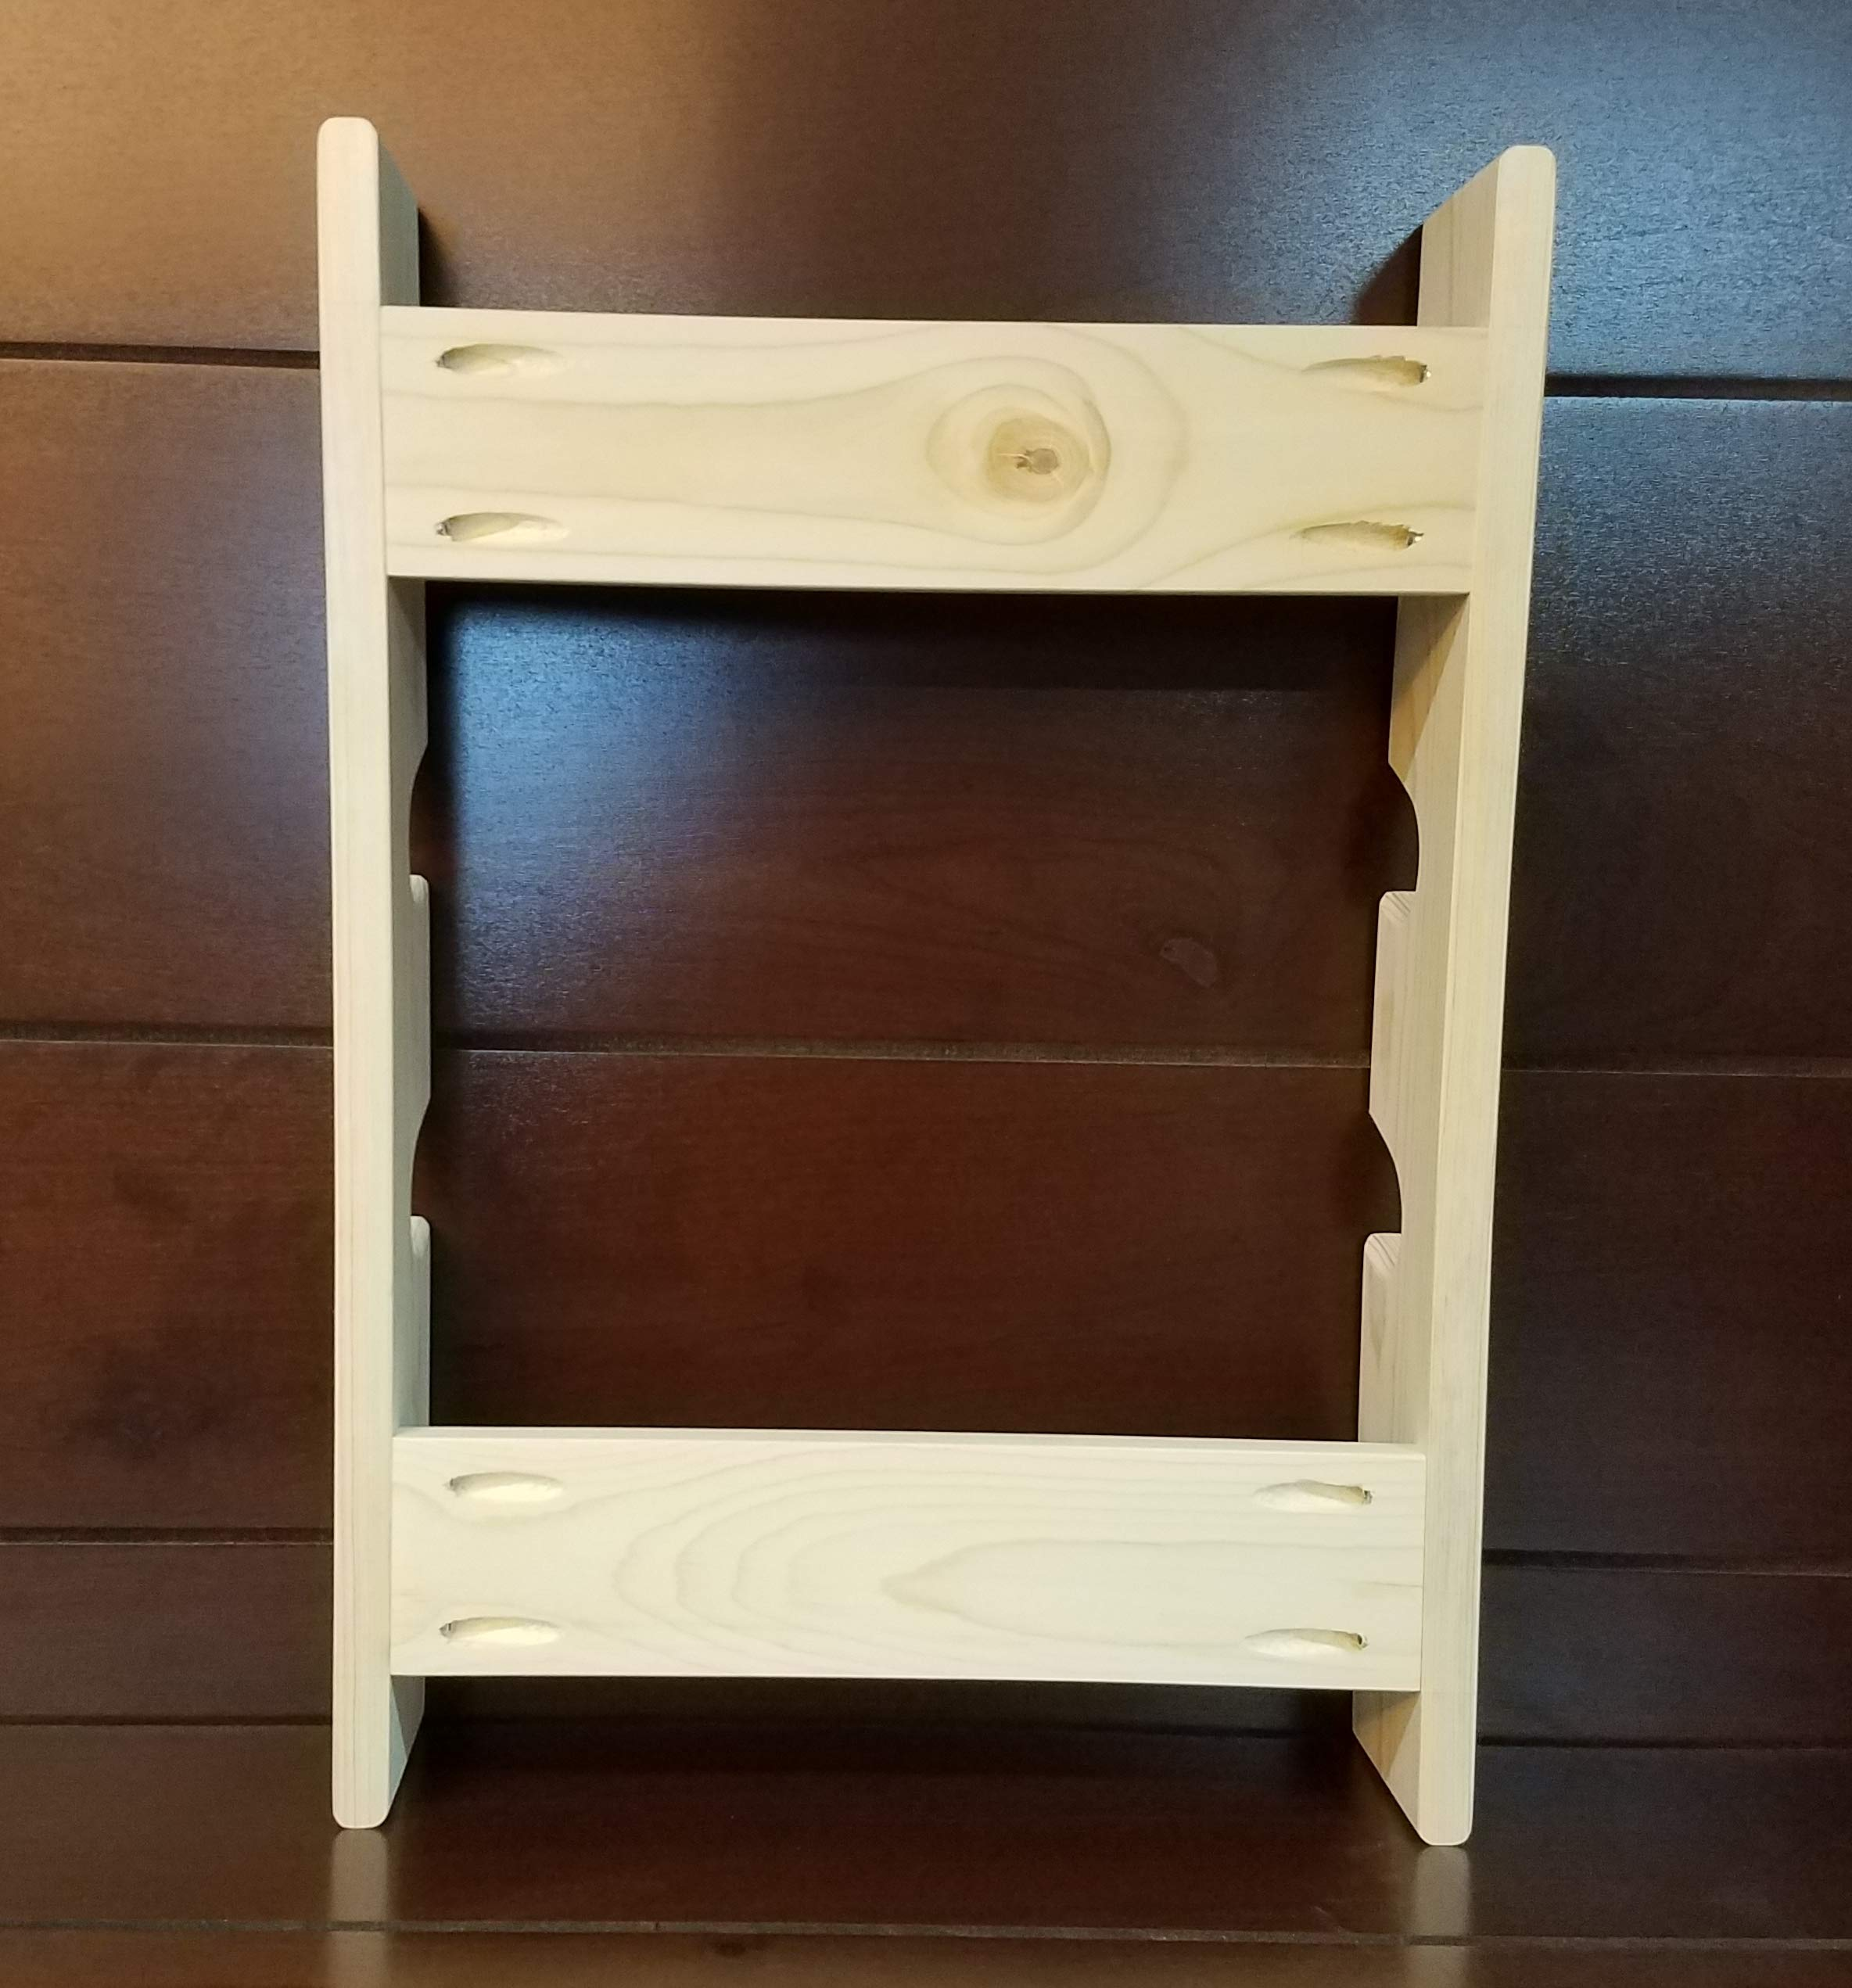 Rolling Pin Rack with Four Slots - Multiple Rolling Pin Rack - Rolling Pin Holder - Rolling Pin Storage - 4 Rolling Pin Rack by Rusty Nail Custom Woodworking (Image #7)